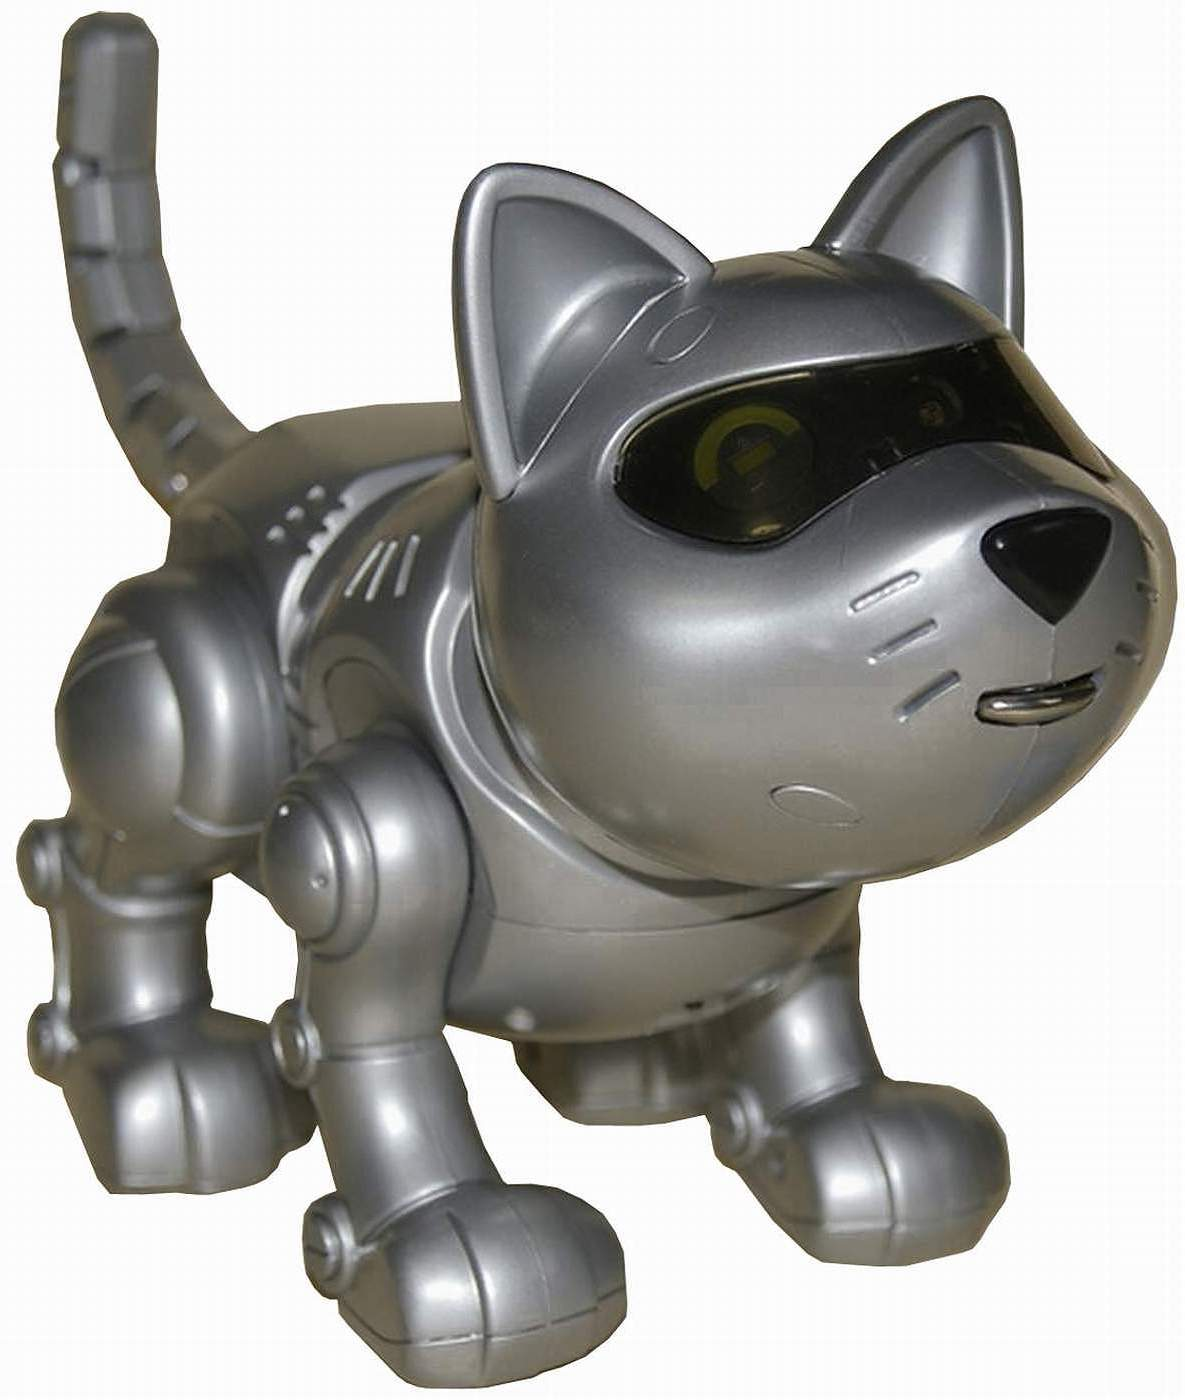 Tekno The Robotic Kitty by Manley Toy Quest - The Old